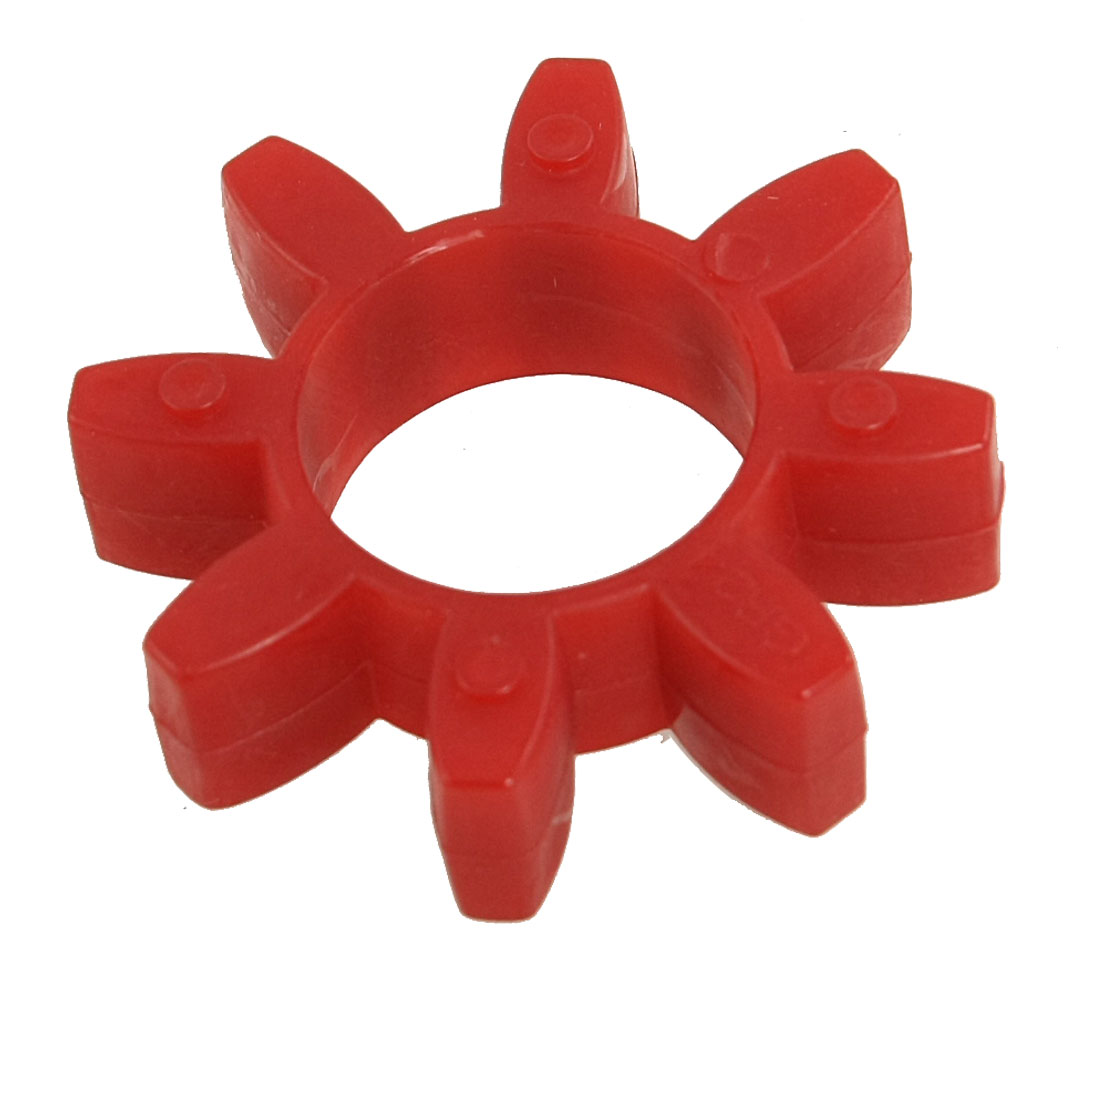 "27mm 1 1/16"" Bore 8 Petal Shaft Coupling Cushion Spider Insert"